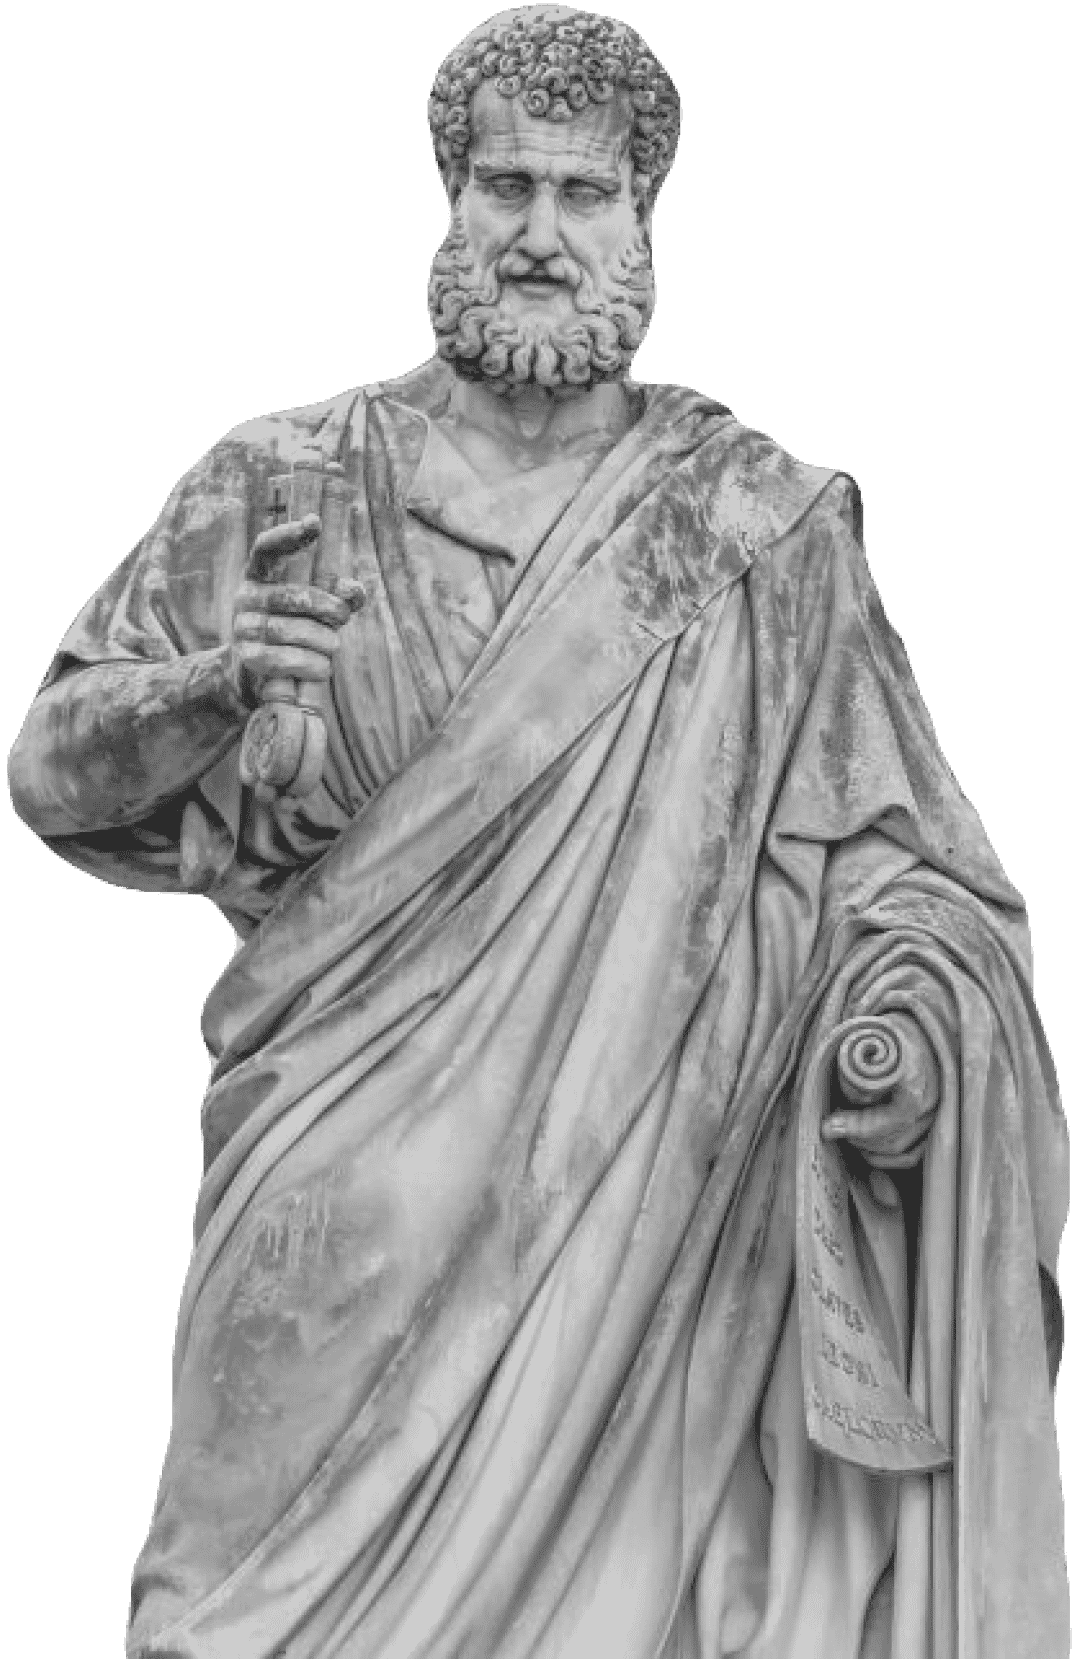 the statue of Saint Peter in front of the Saint Peters Basilica in Rome